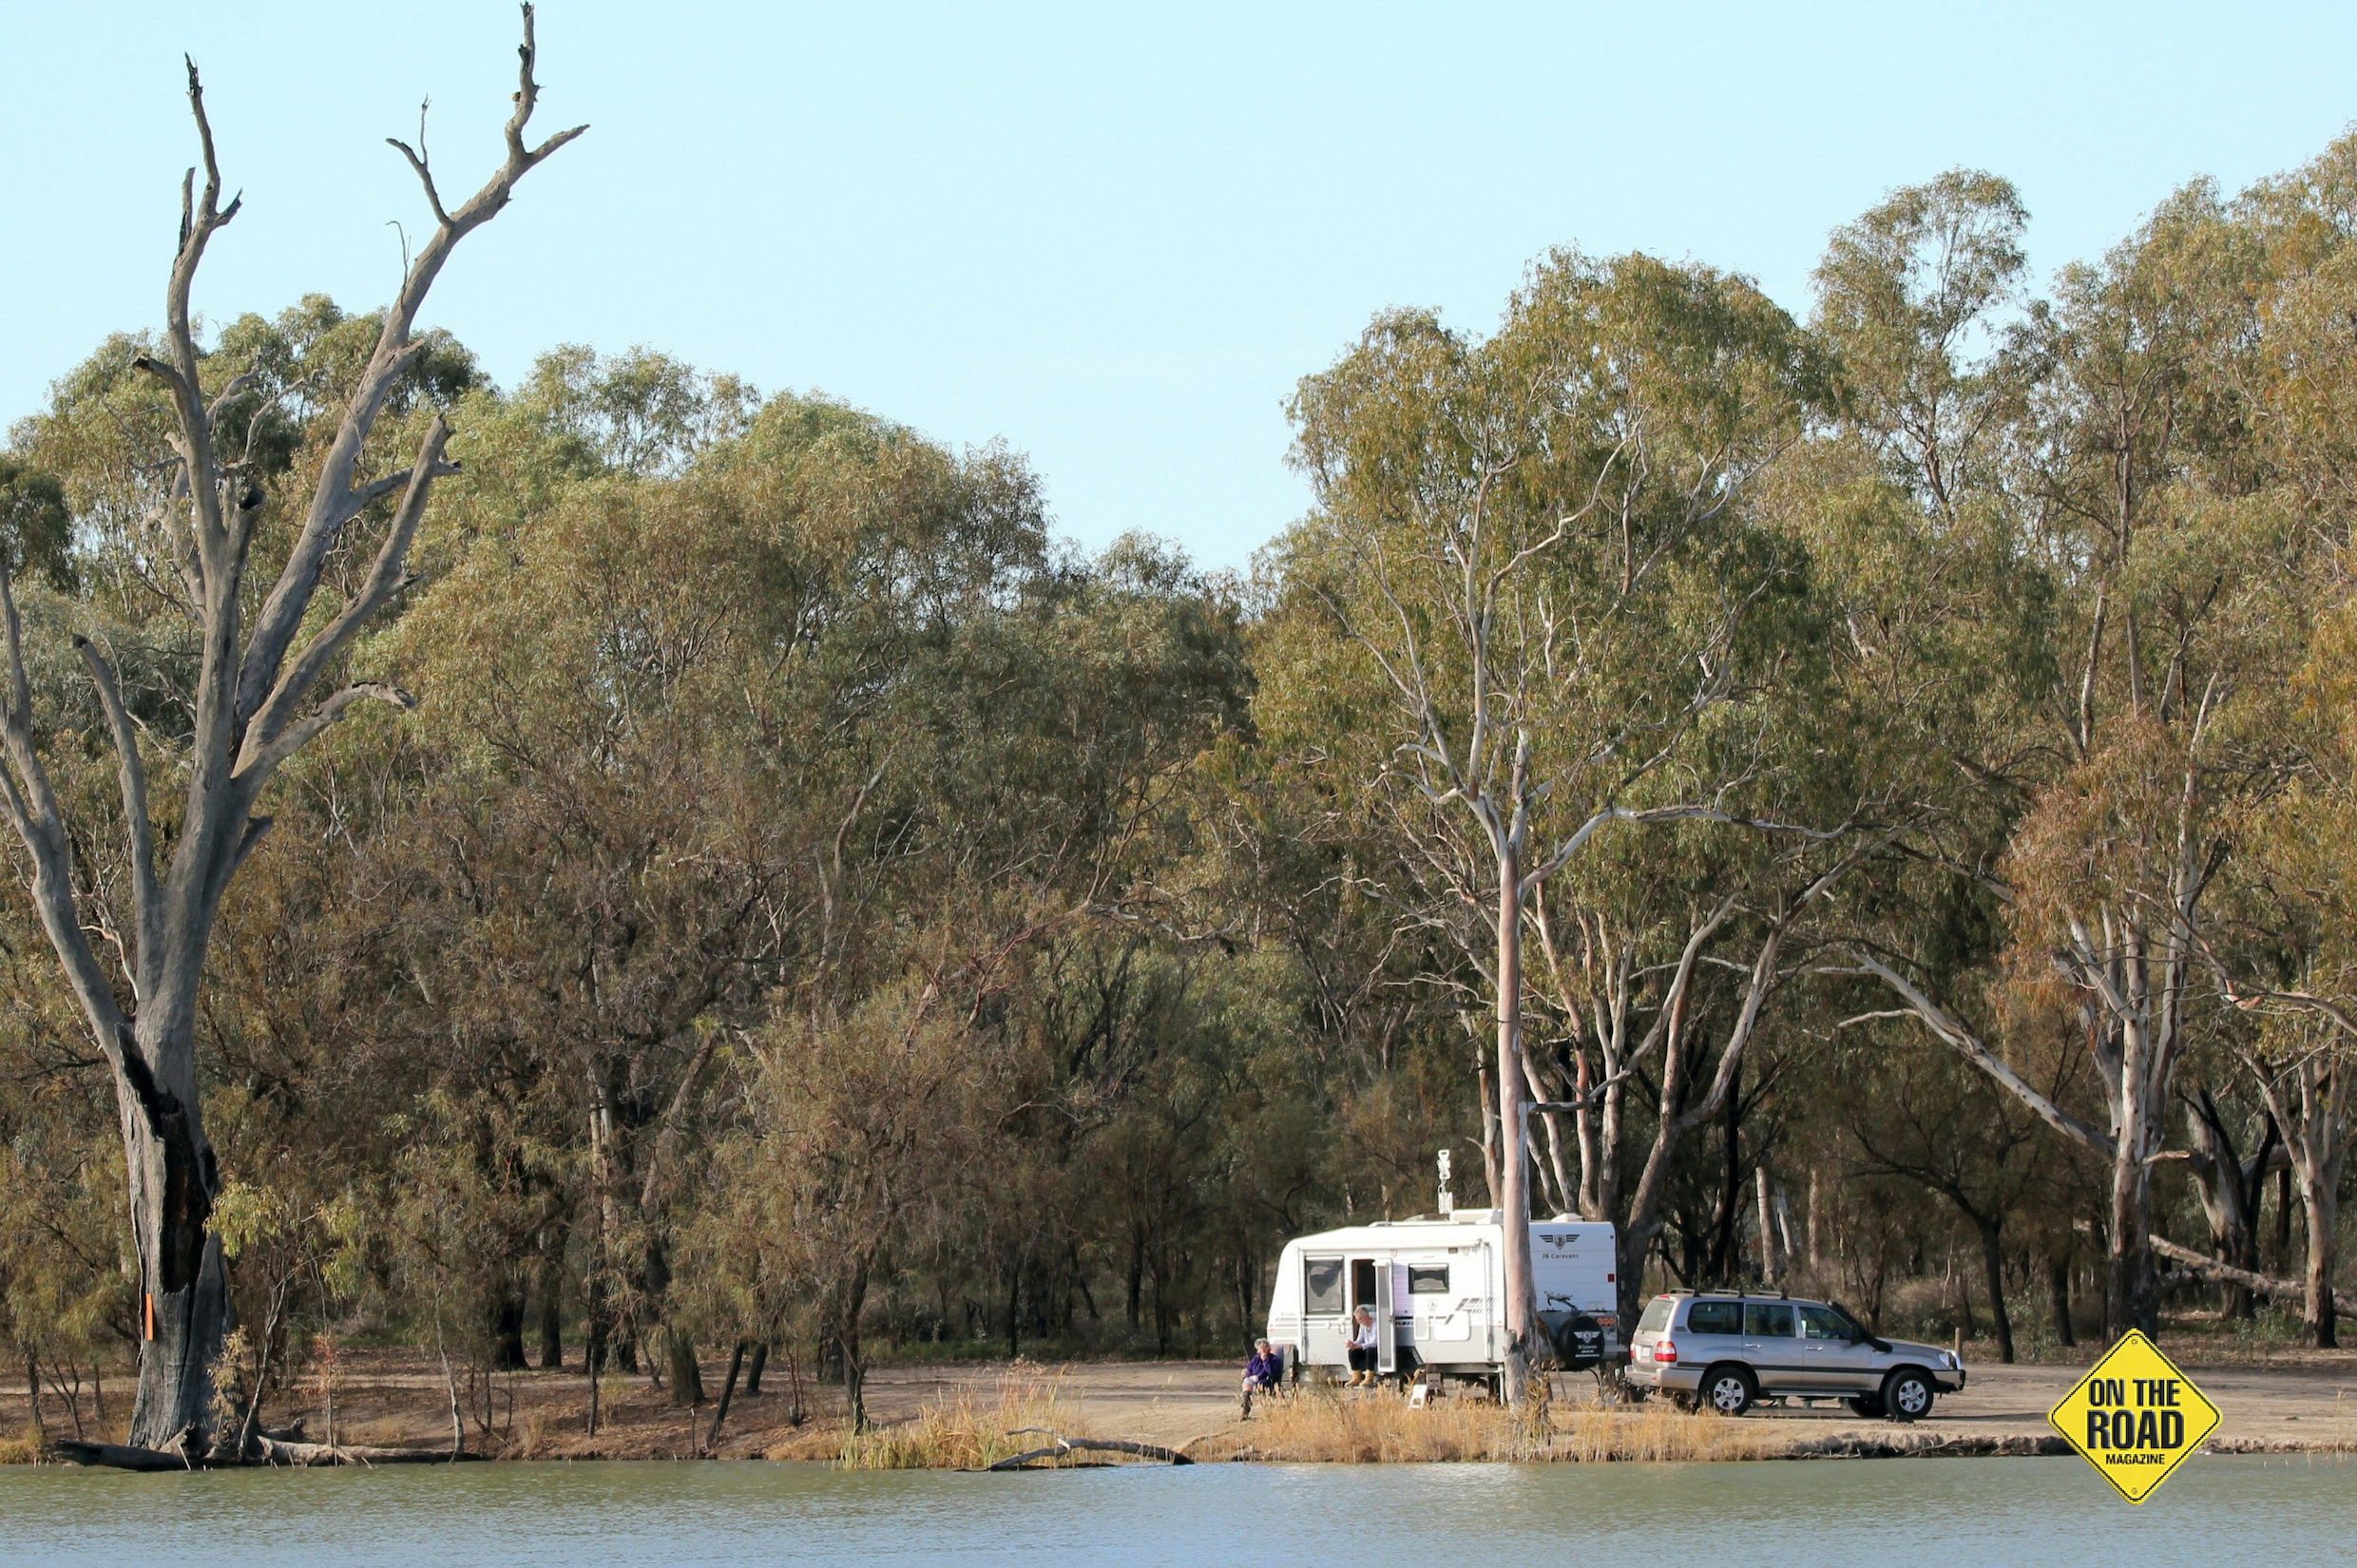 Camping tight on the bank of the mighty Murray River